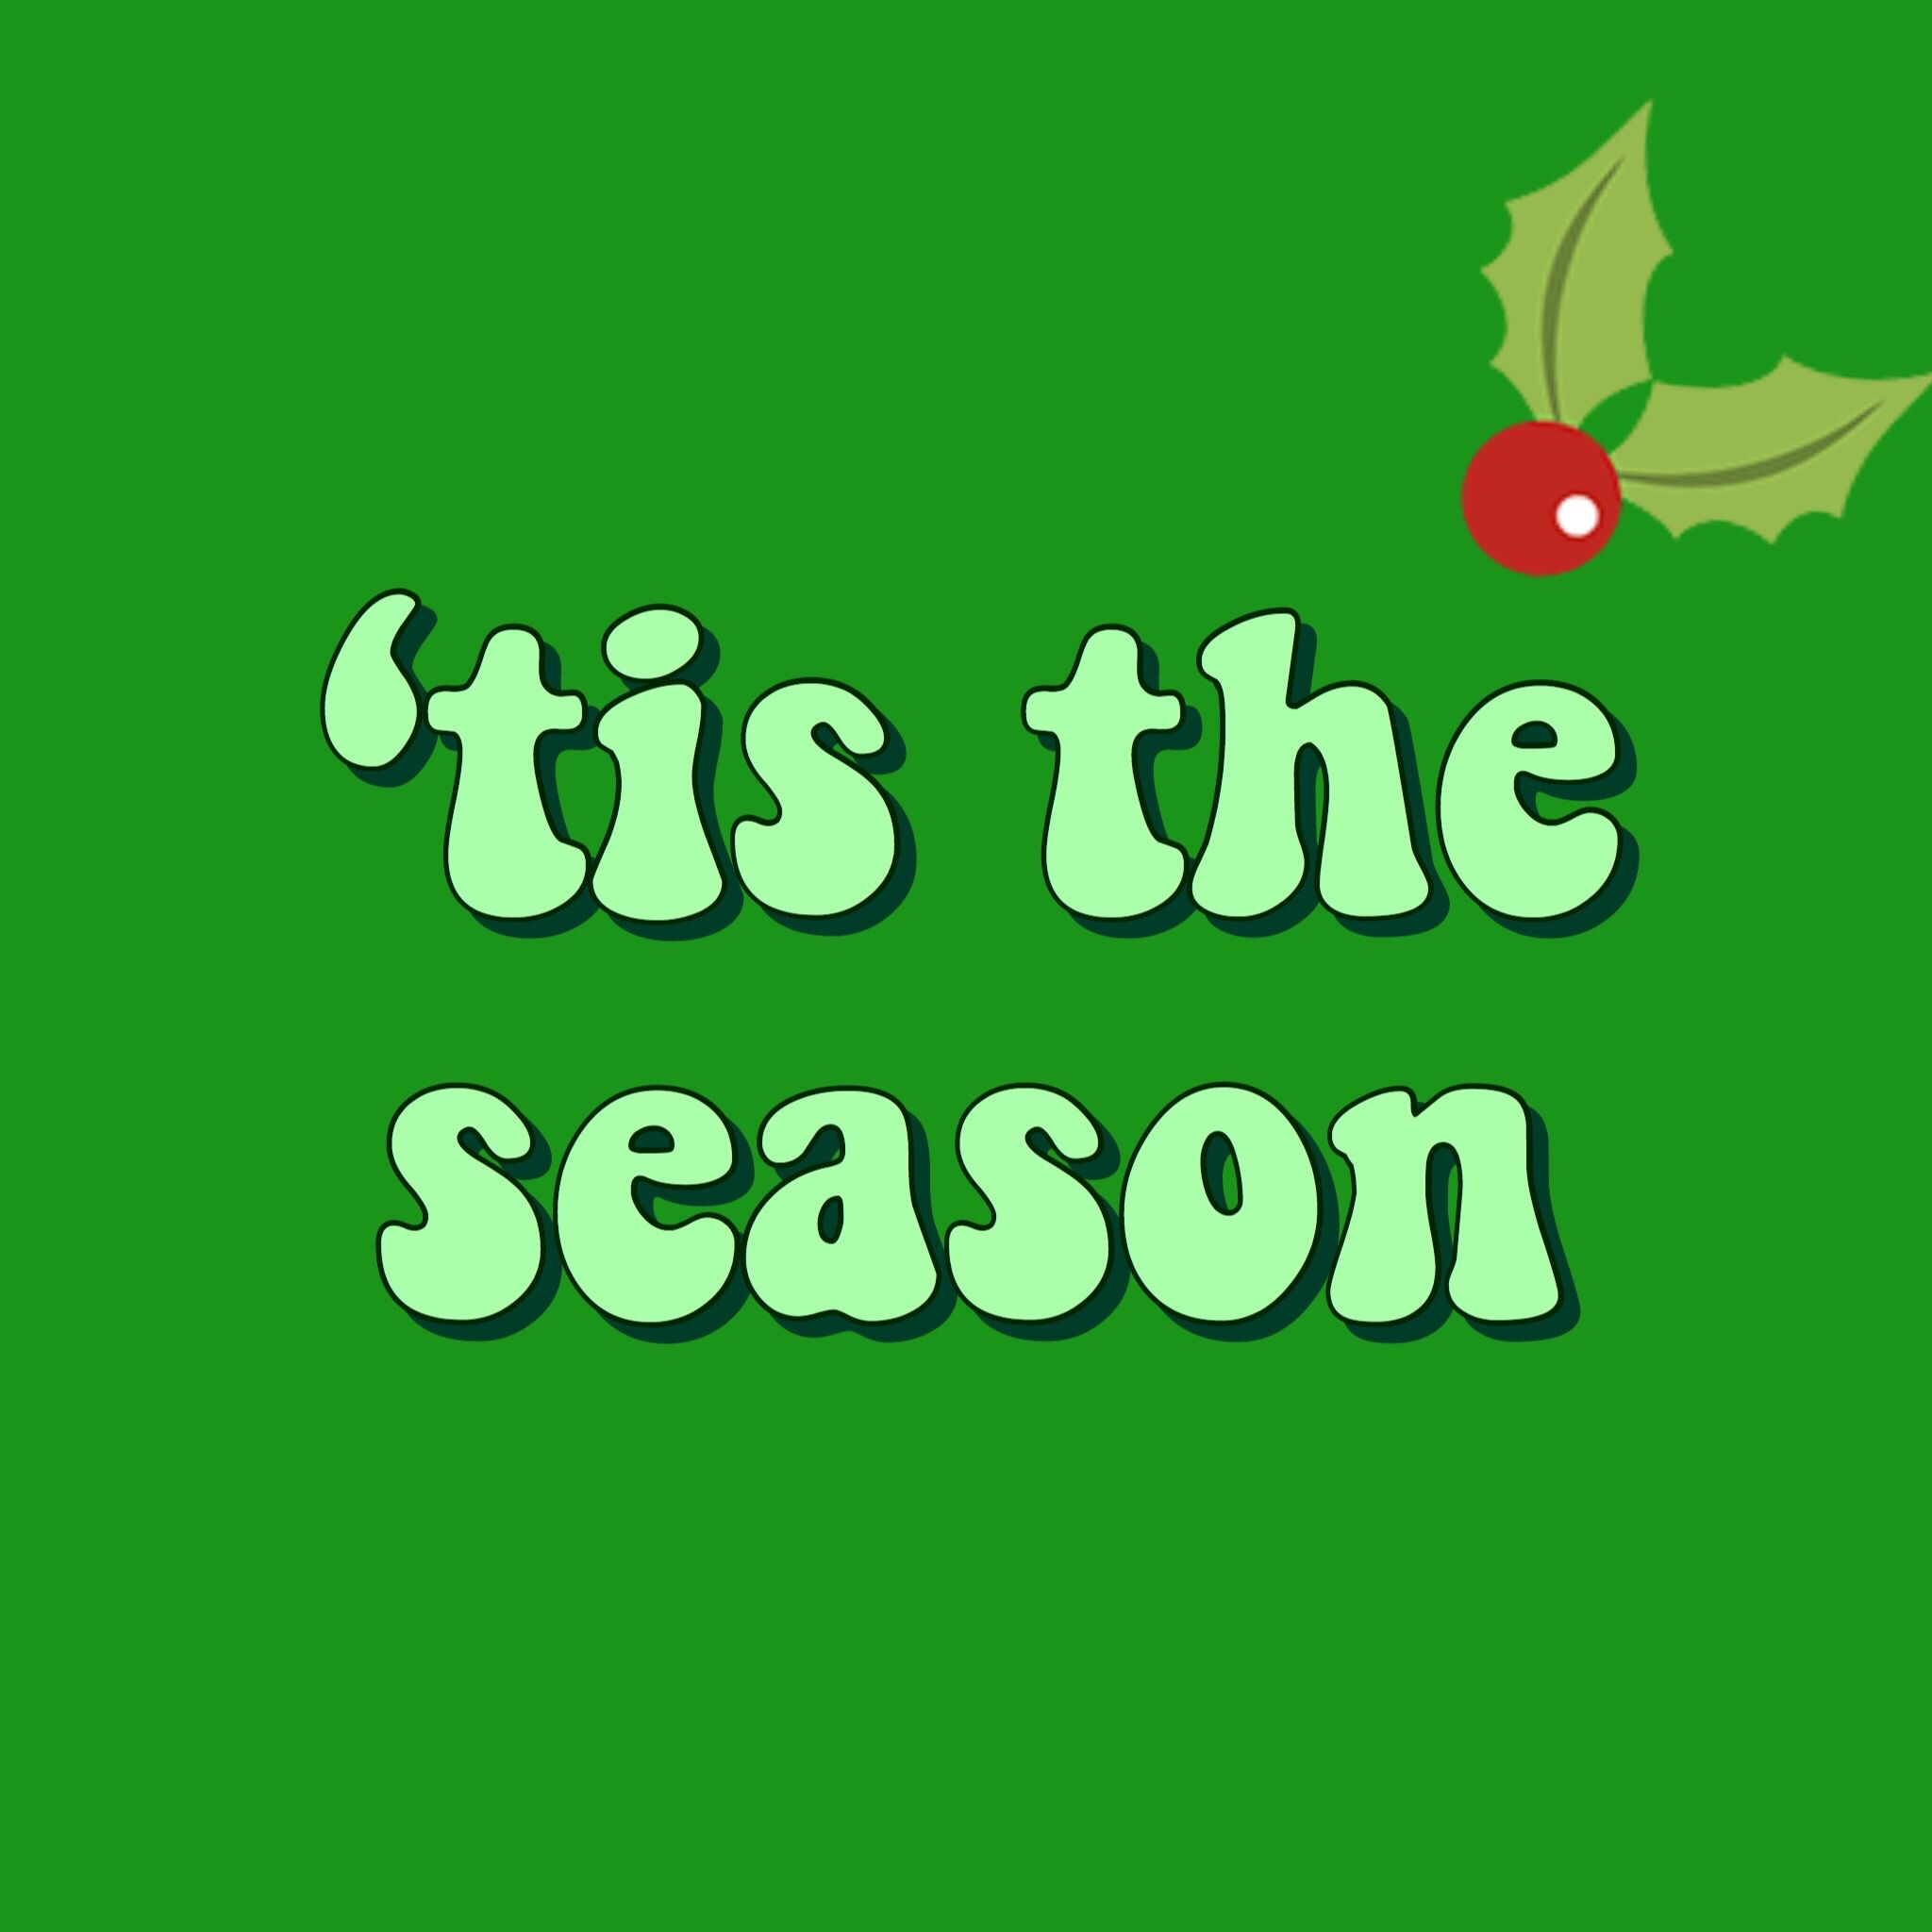 tis the season quote song cute christmas wallpaper christmas wallpapers tumblr season quotes tis the season quote song cute